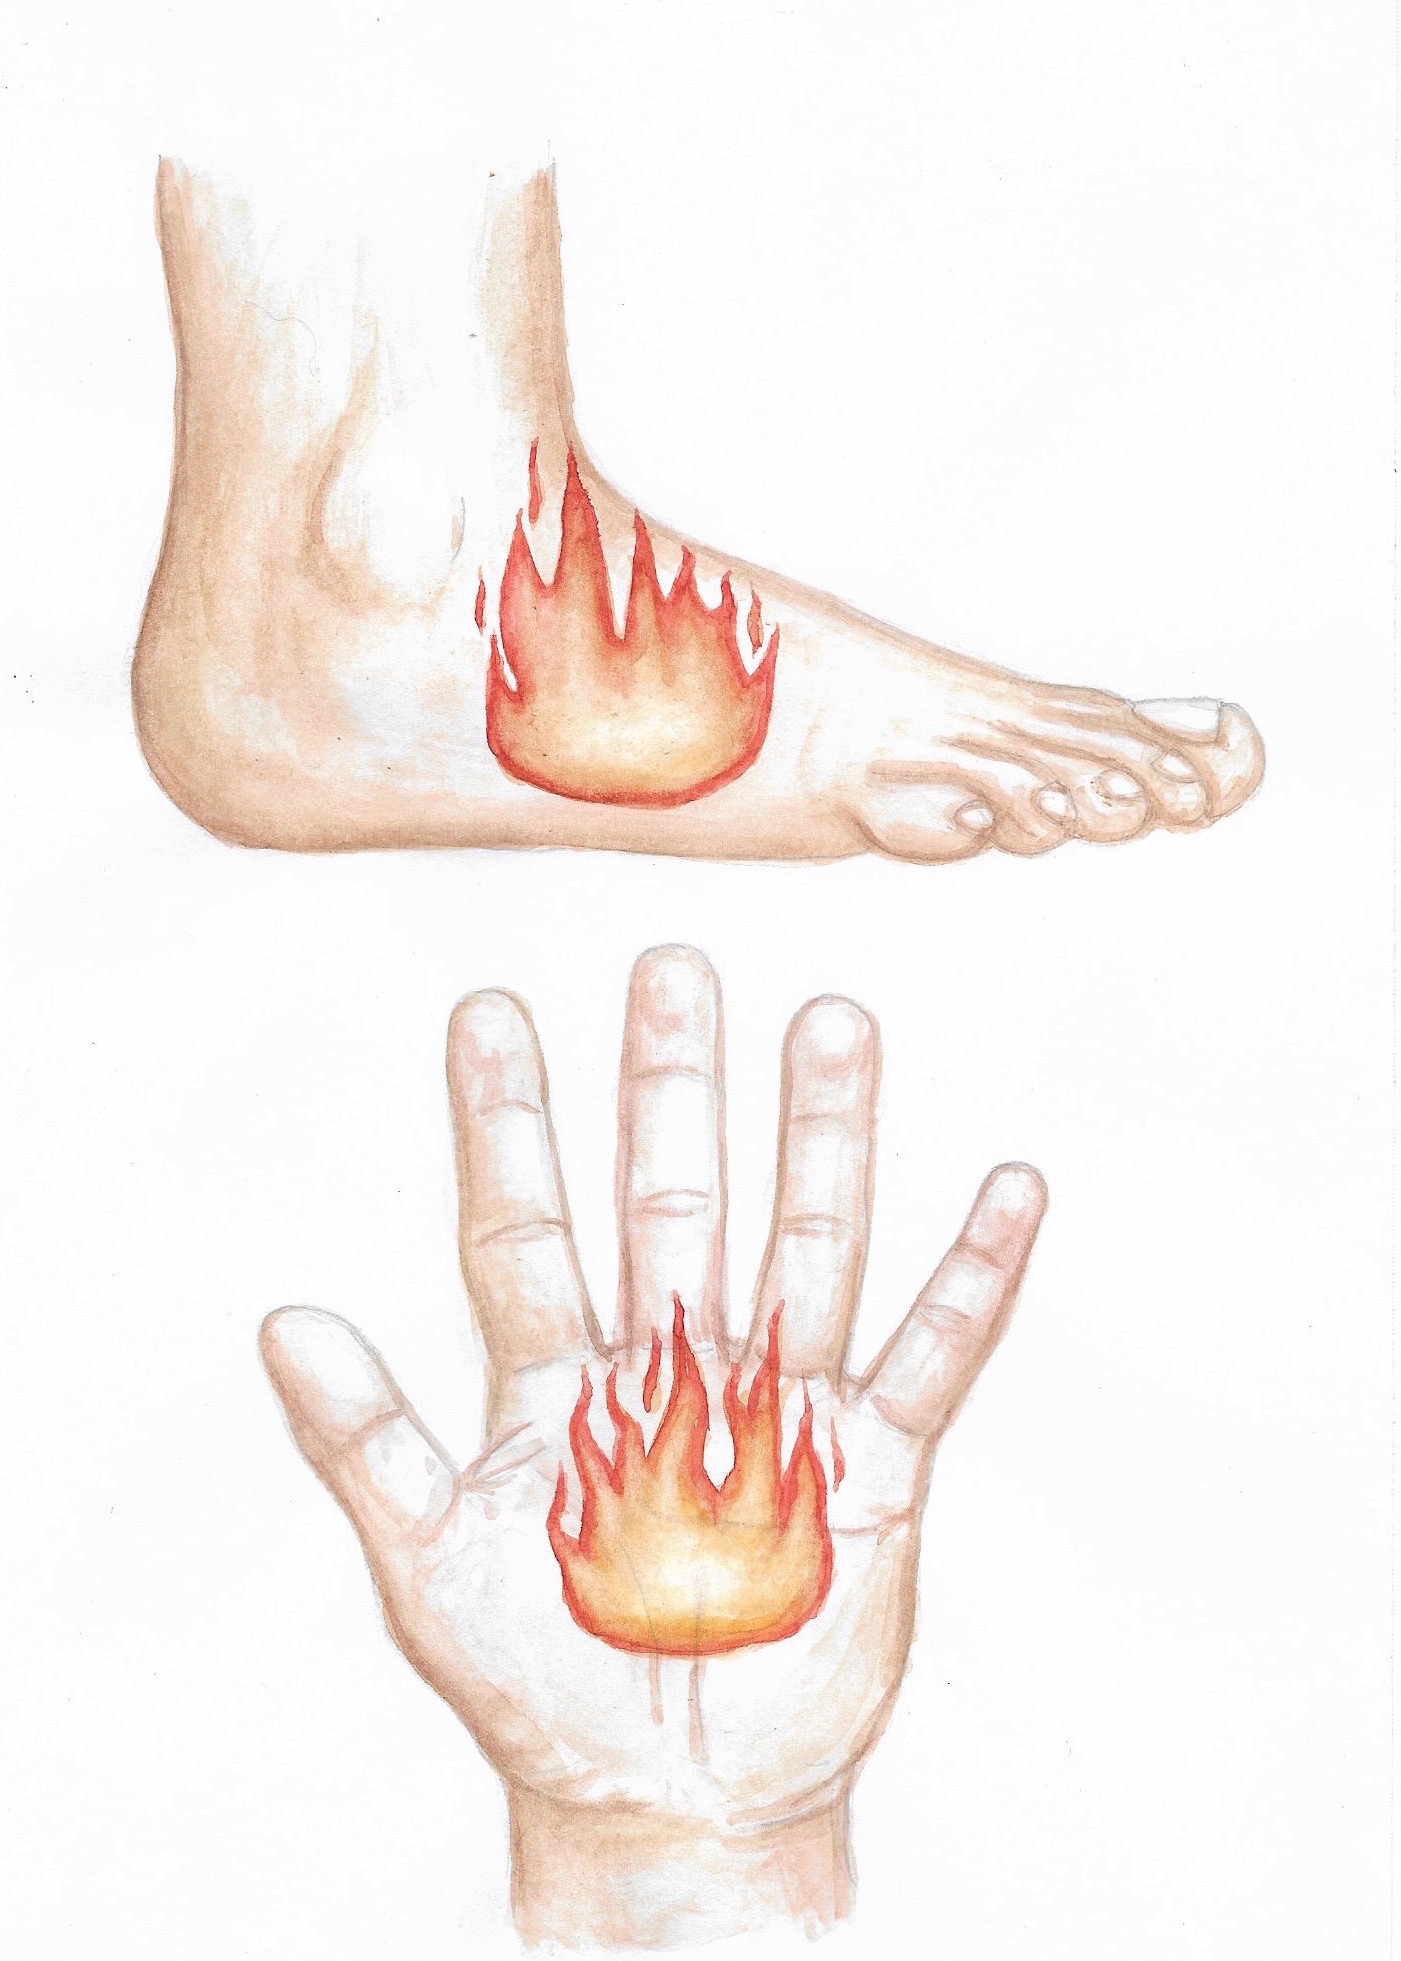 "Medical illustration of hand and foot burning sensation. Watercolor and pencil on Canson mixed media paper. 10x7.""  2018."